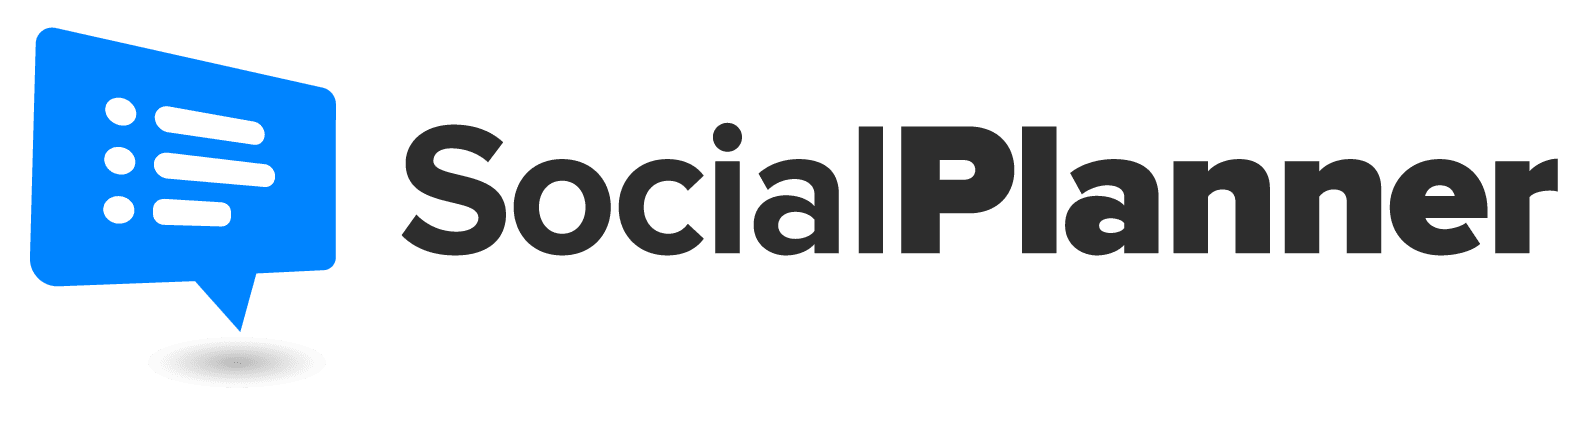 Social Planner – Social Media Marketing Tips, Resources and Guides